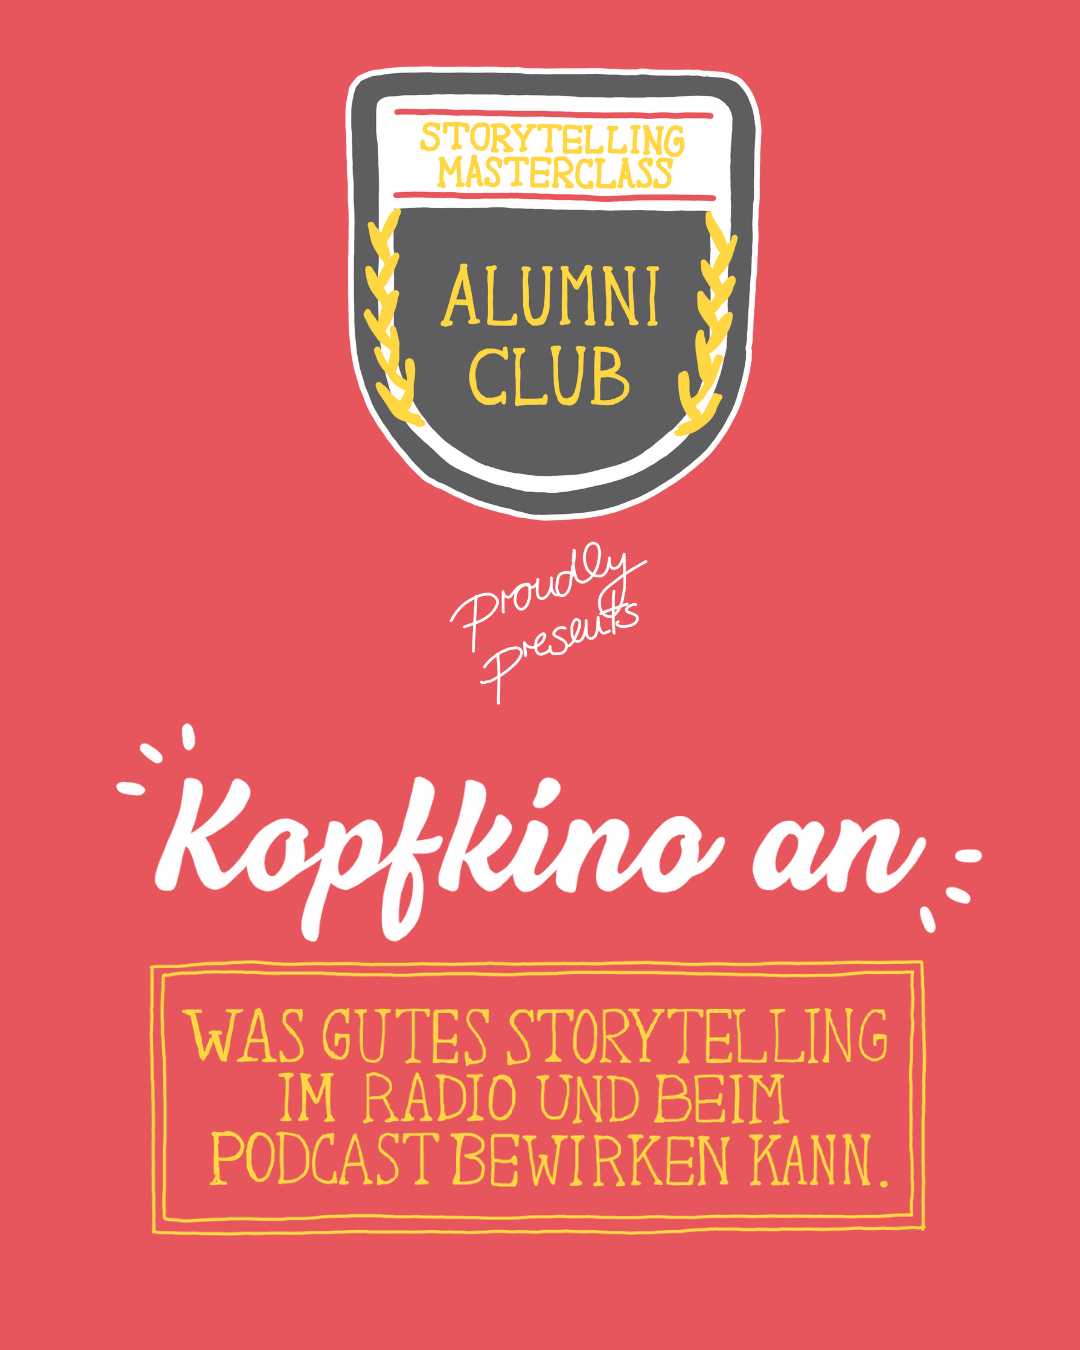 Alumni Club Radio Podcast